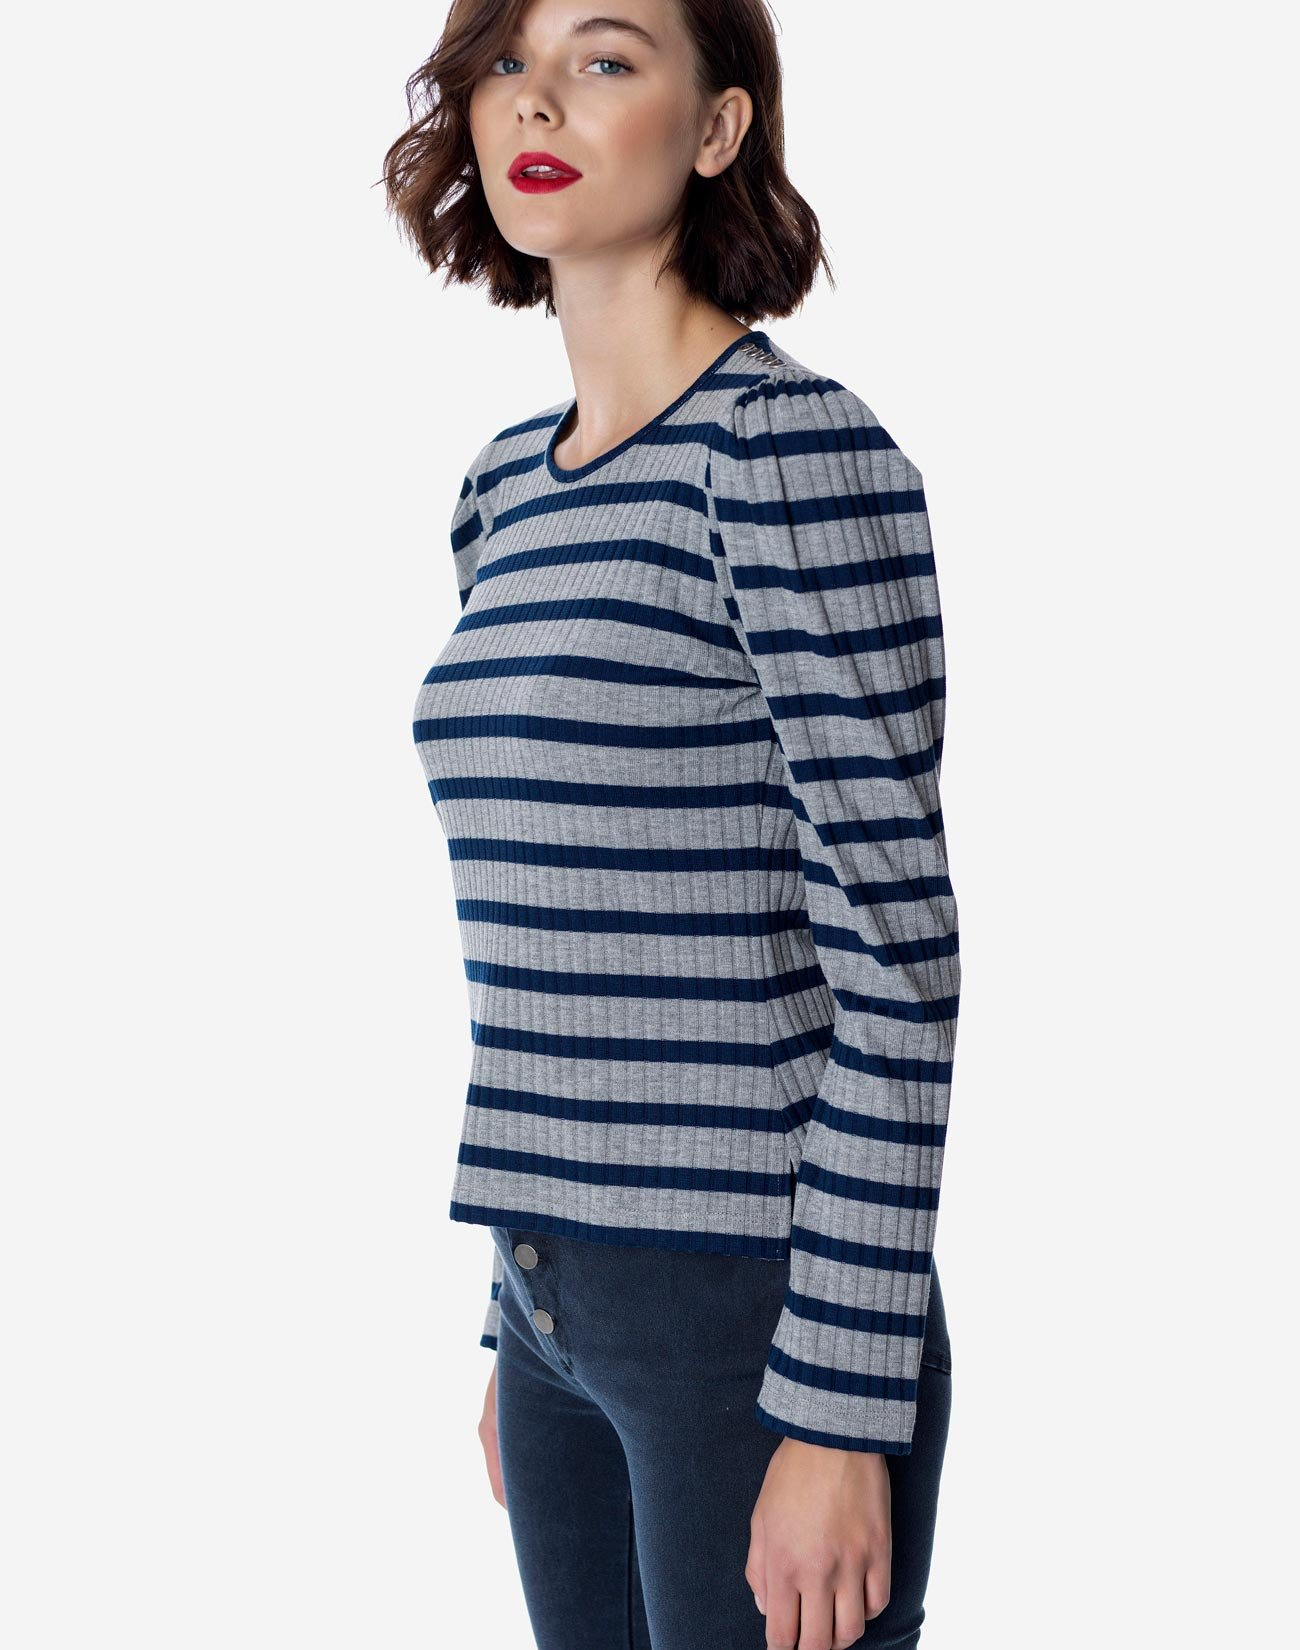 Striped top with buttons